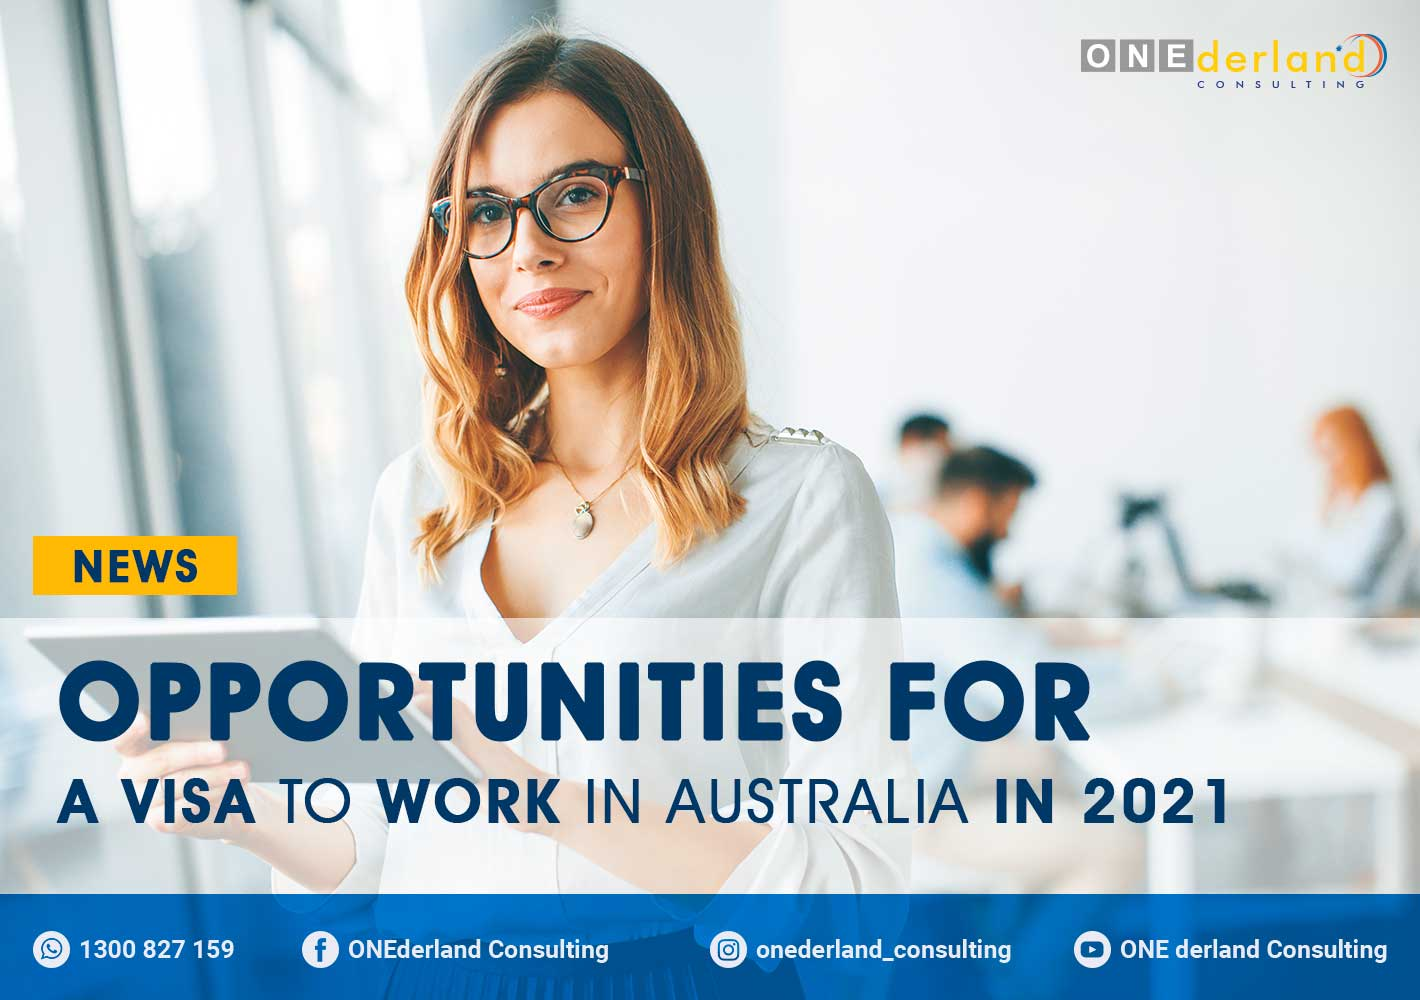 Opportunities For A Visa To Work In Australia In 2021